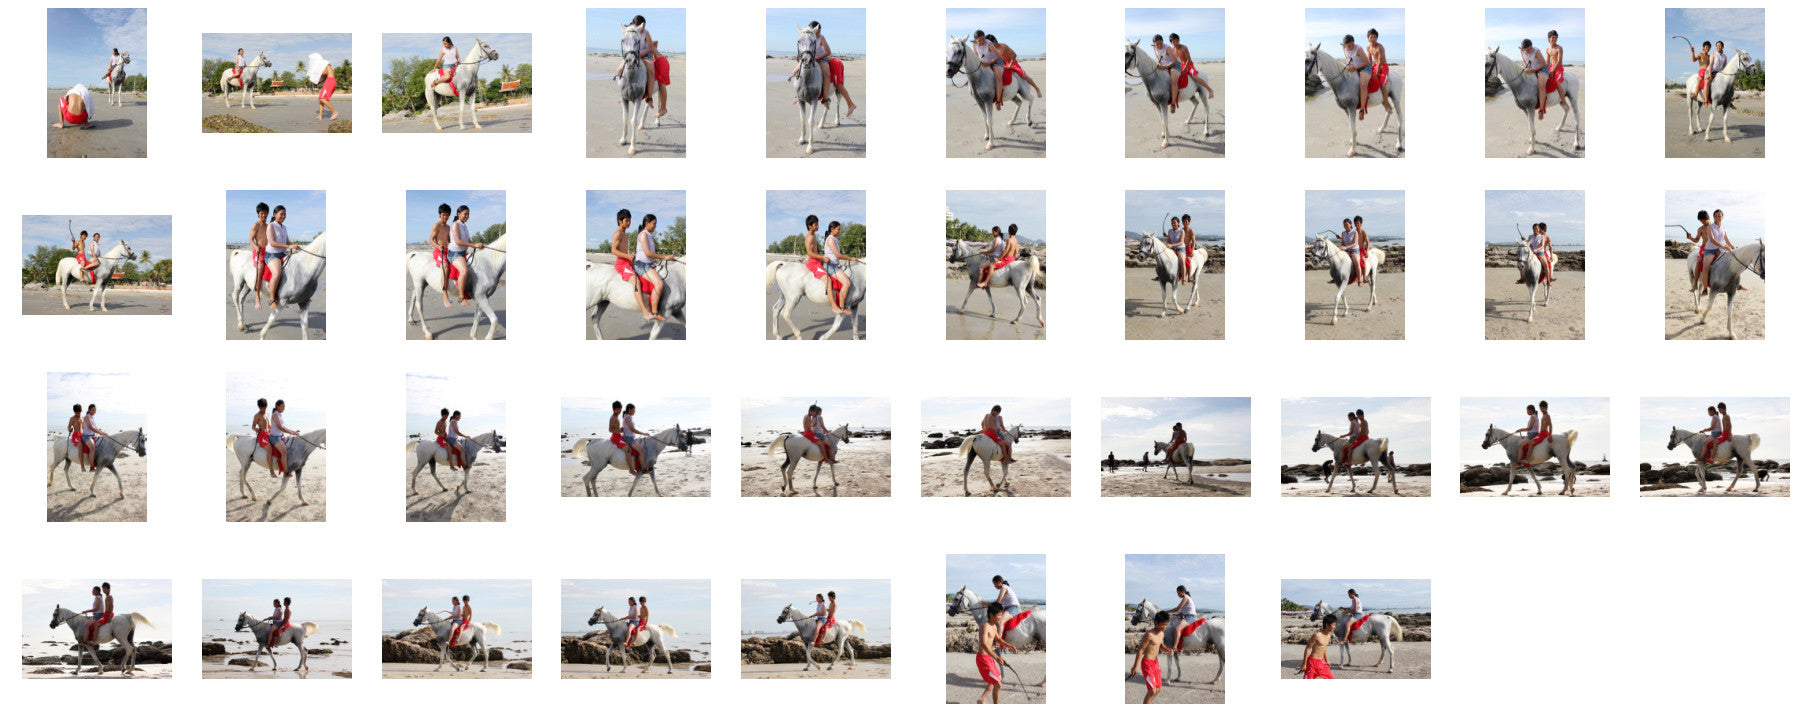 Nam and David Riding DOUBLE on White Arabian Horse - Riding.Vision